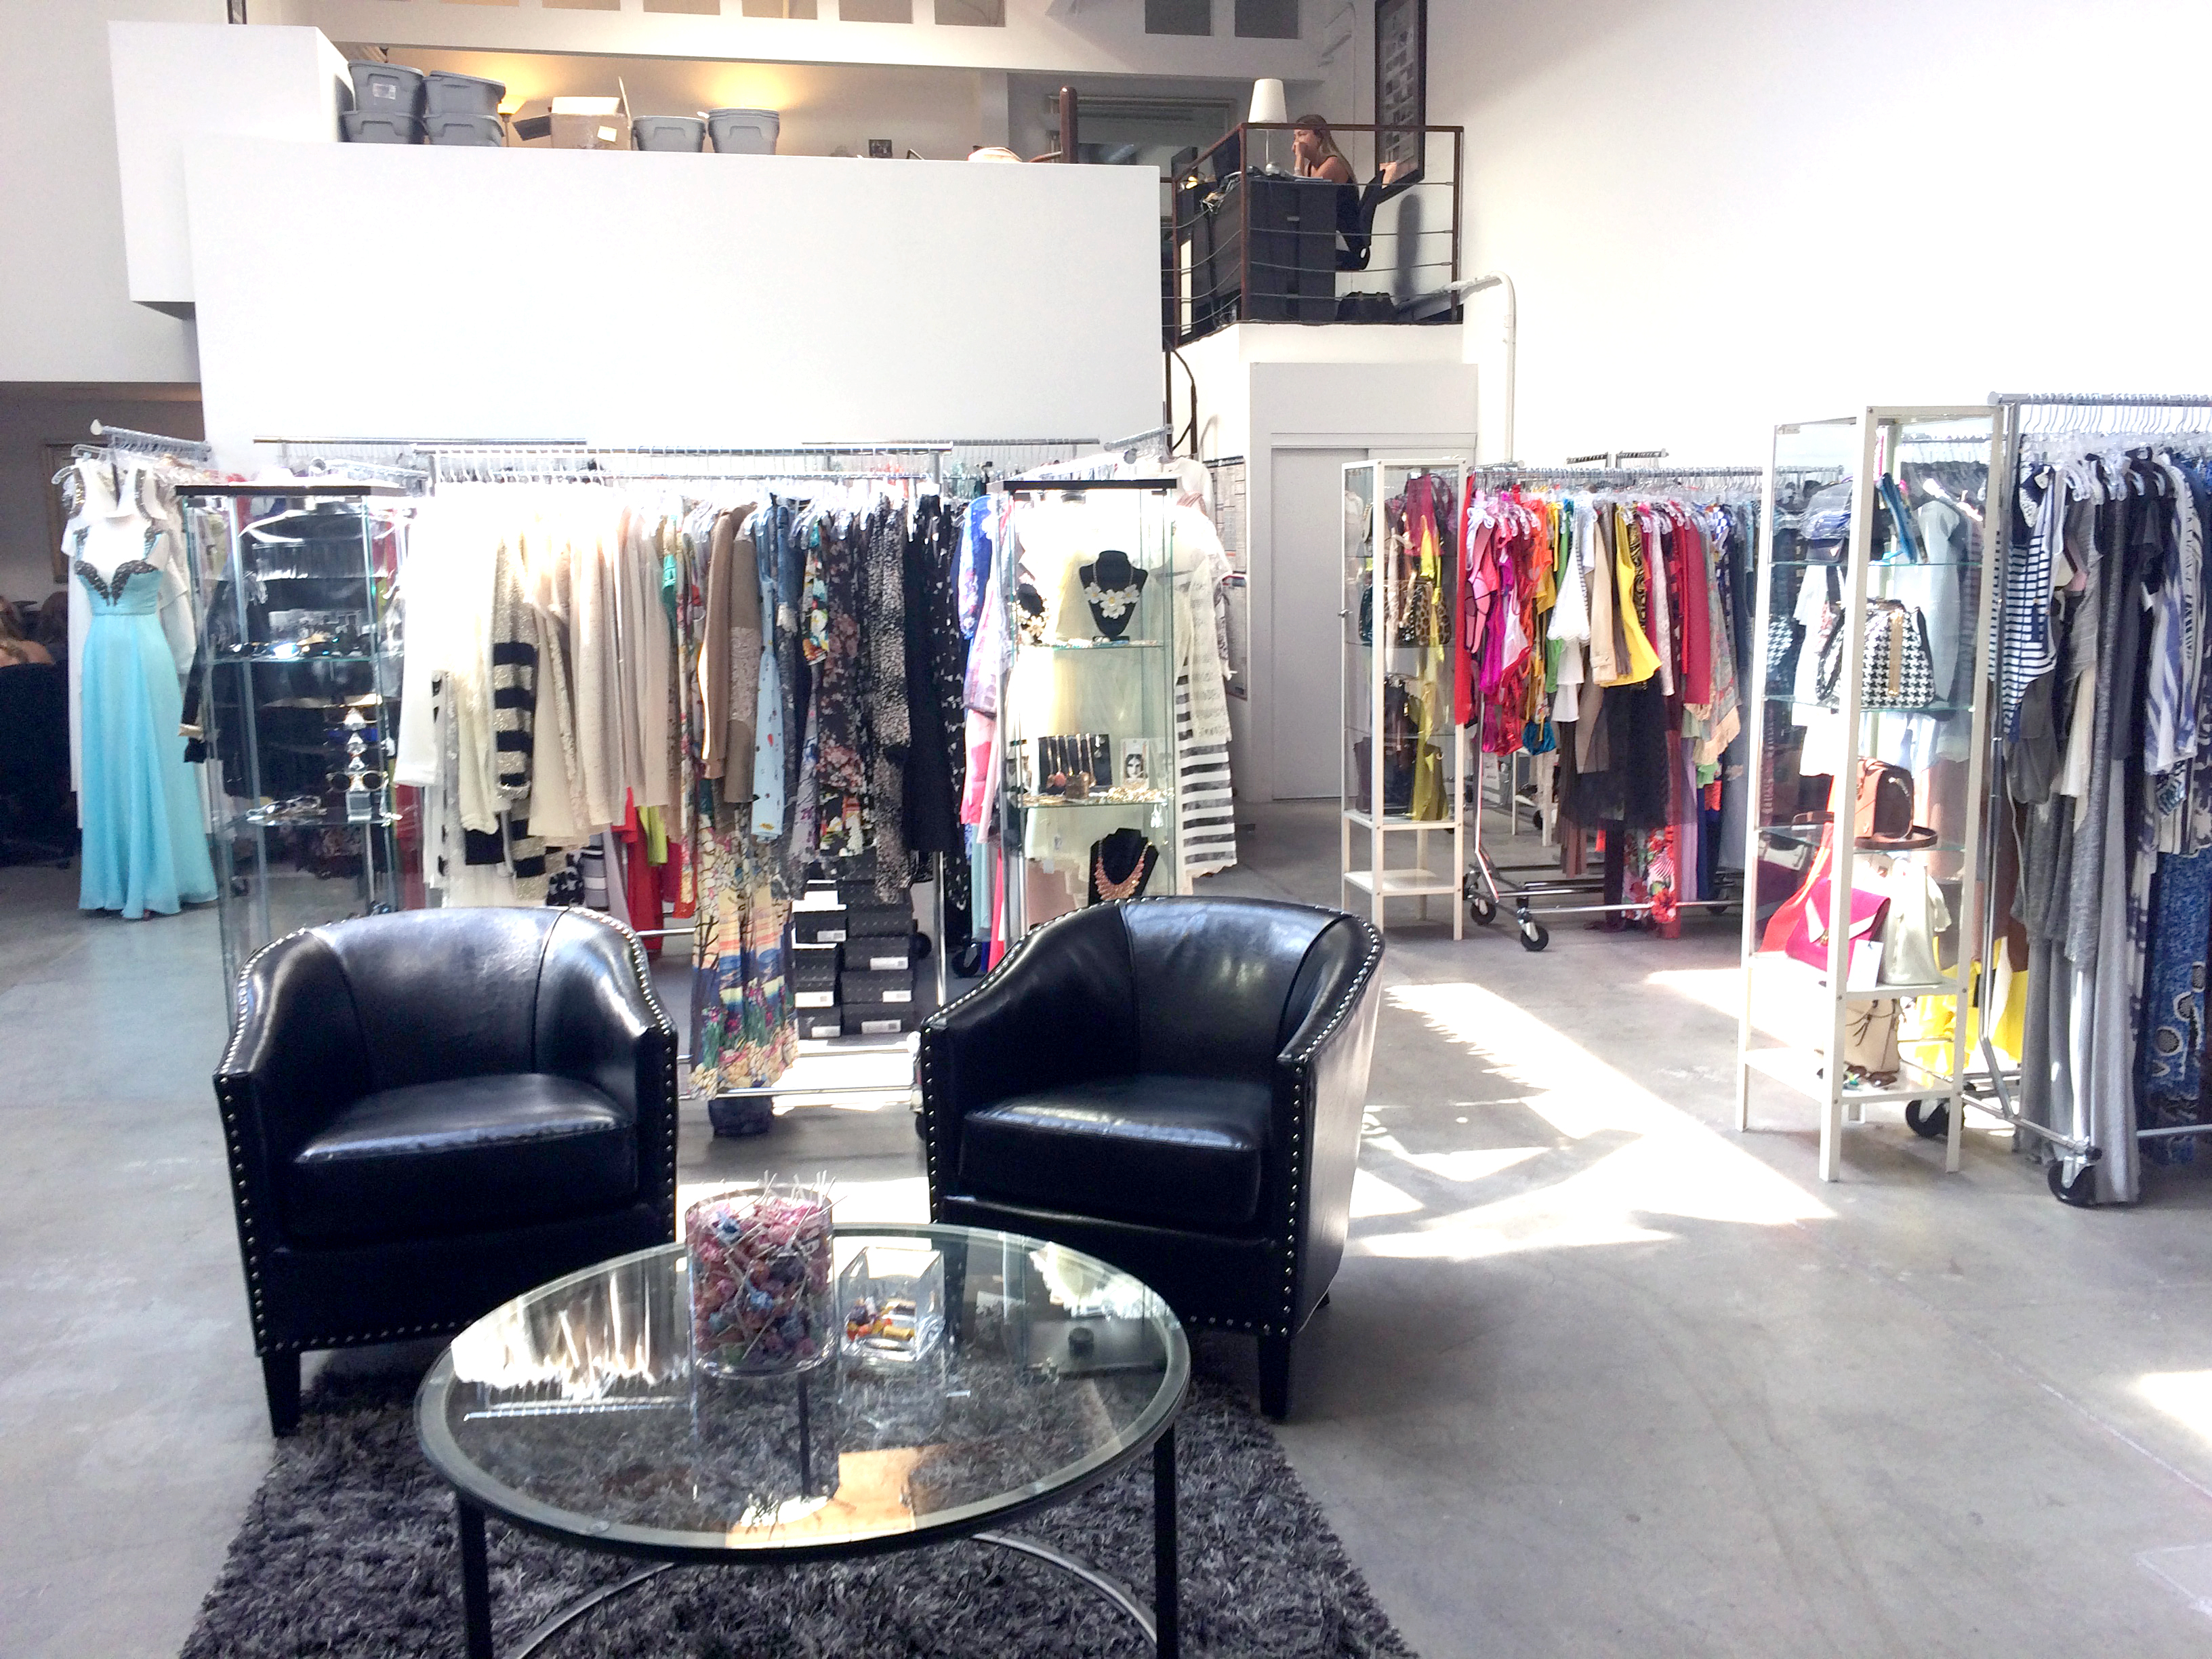 Best Fashion showrooms in Los Angeles, CA - Yelp 73